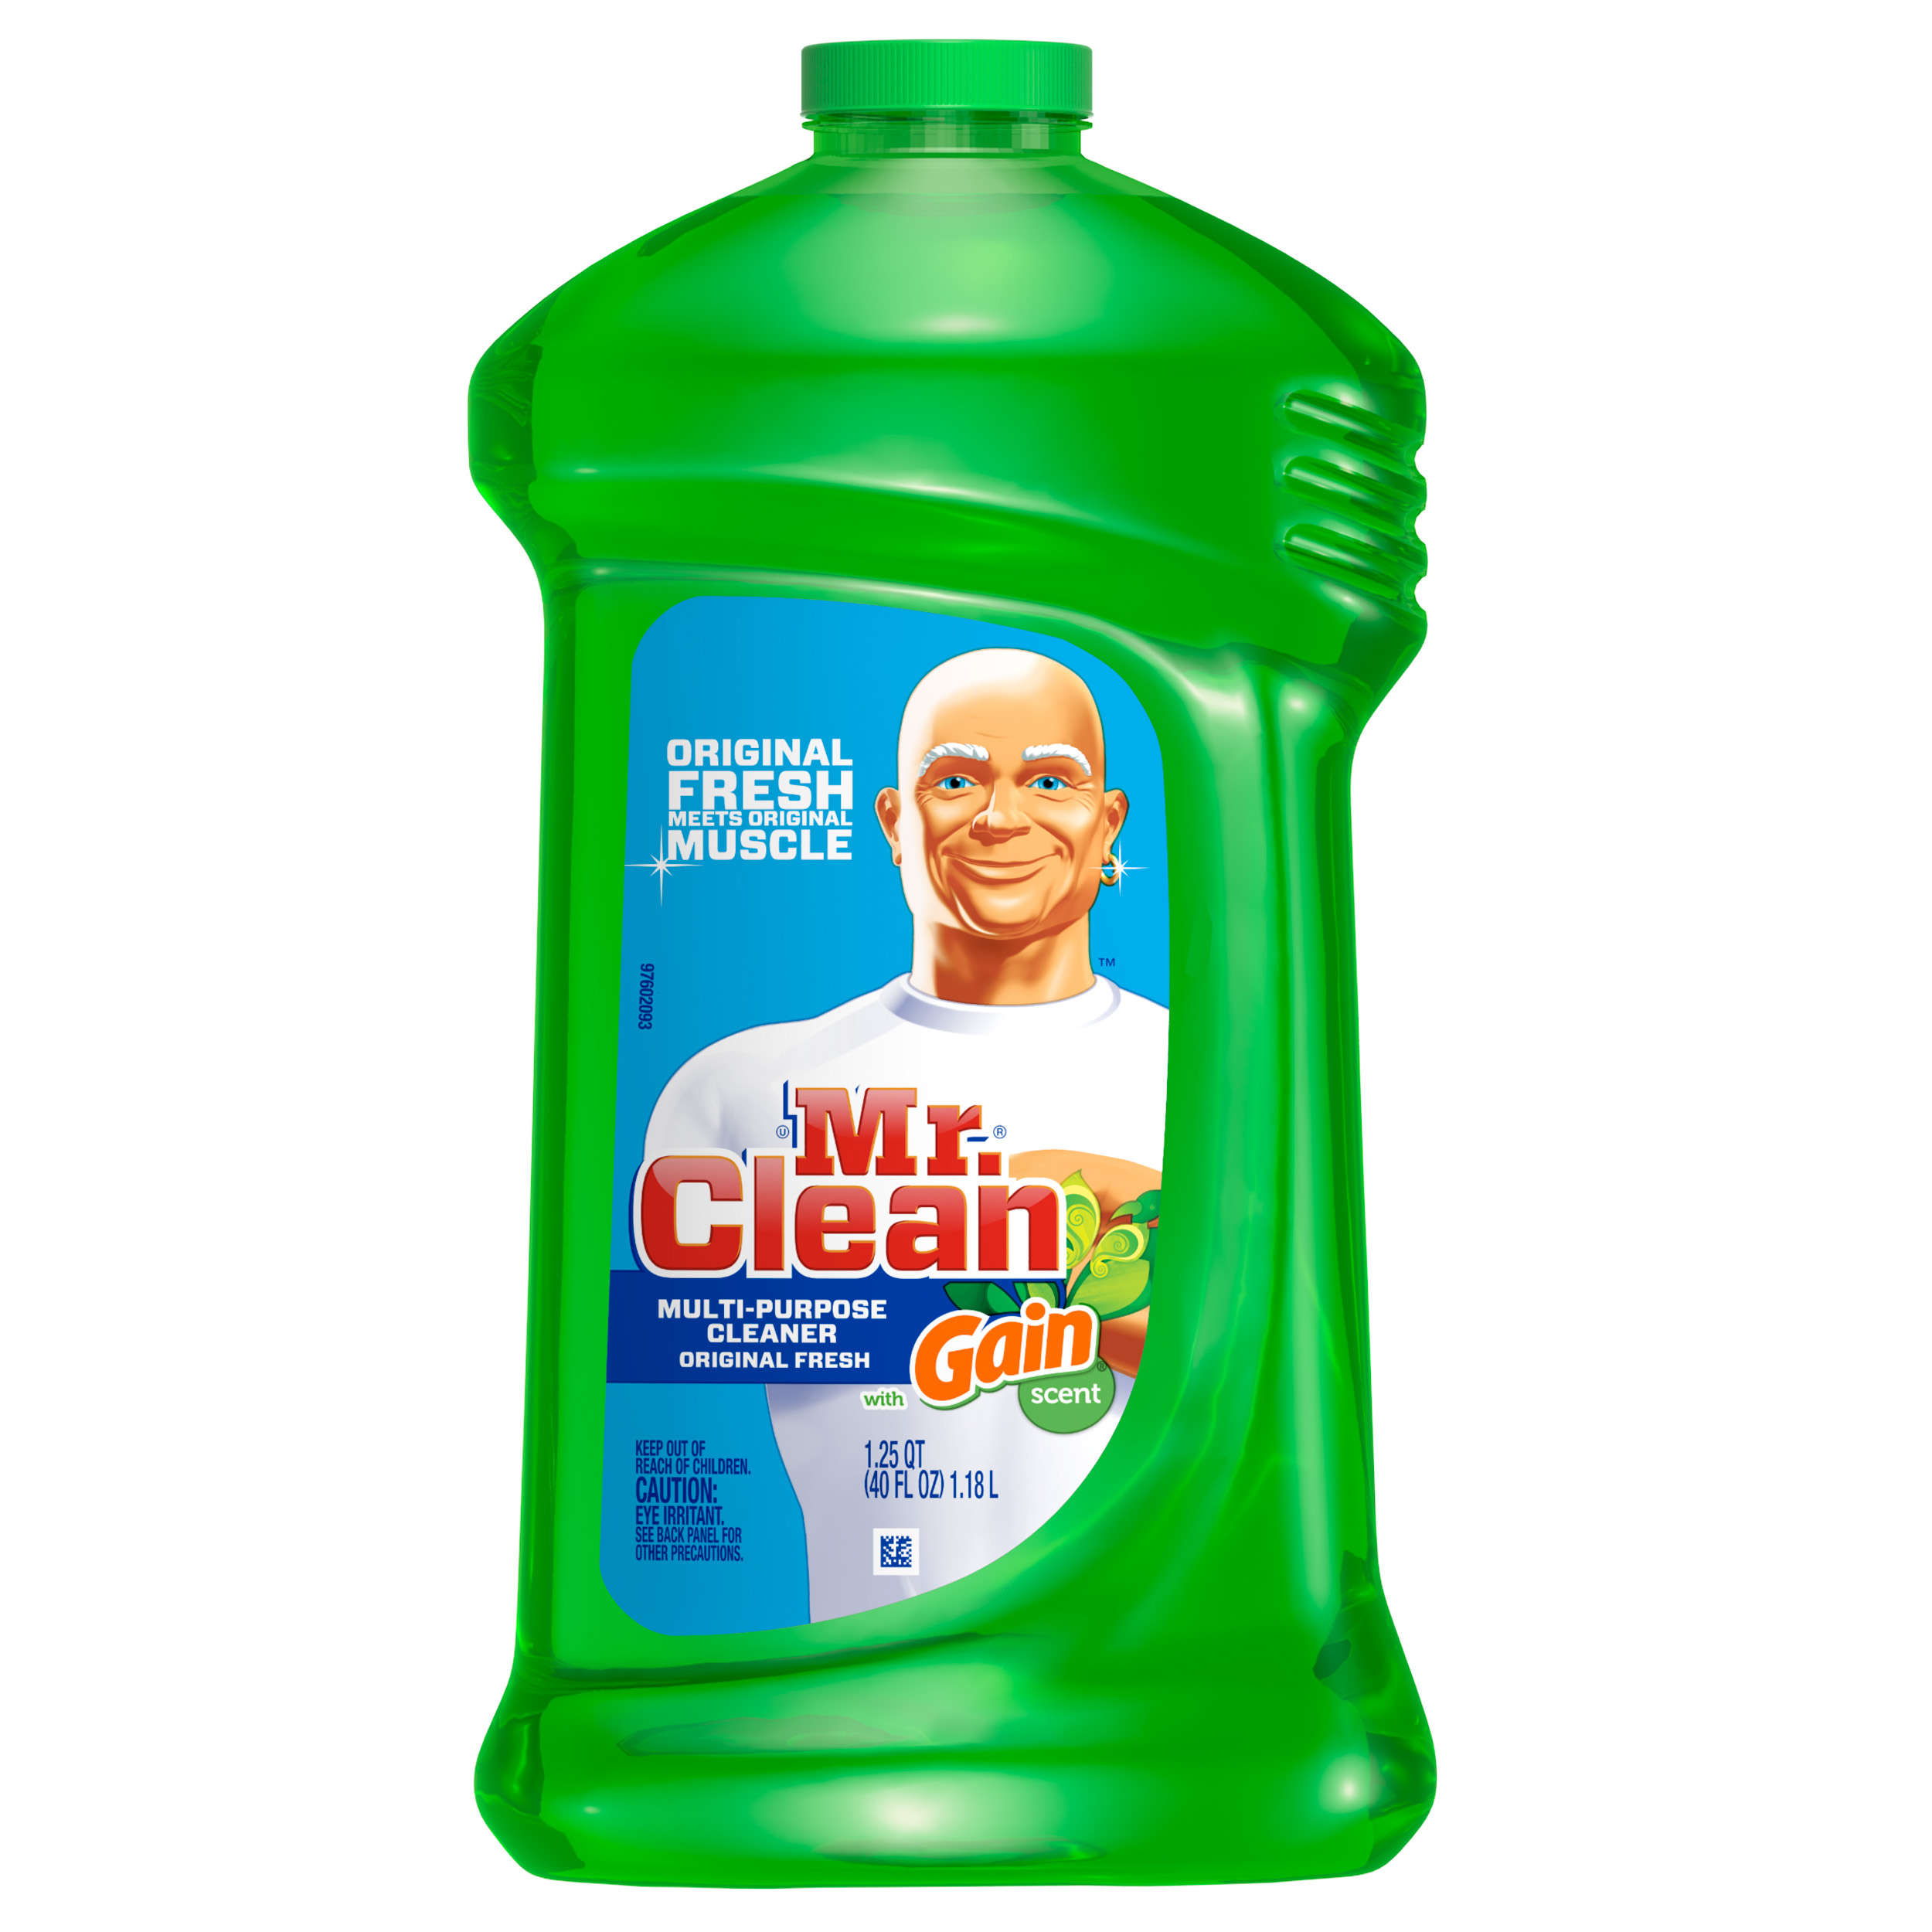 Mr. Clean with Gain Multi-Surface Cleaner, Original Fresh Scent, 40 oz.